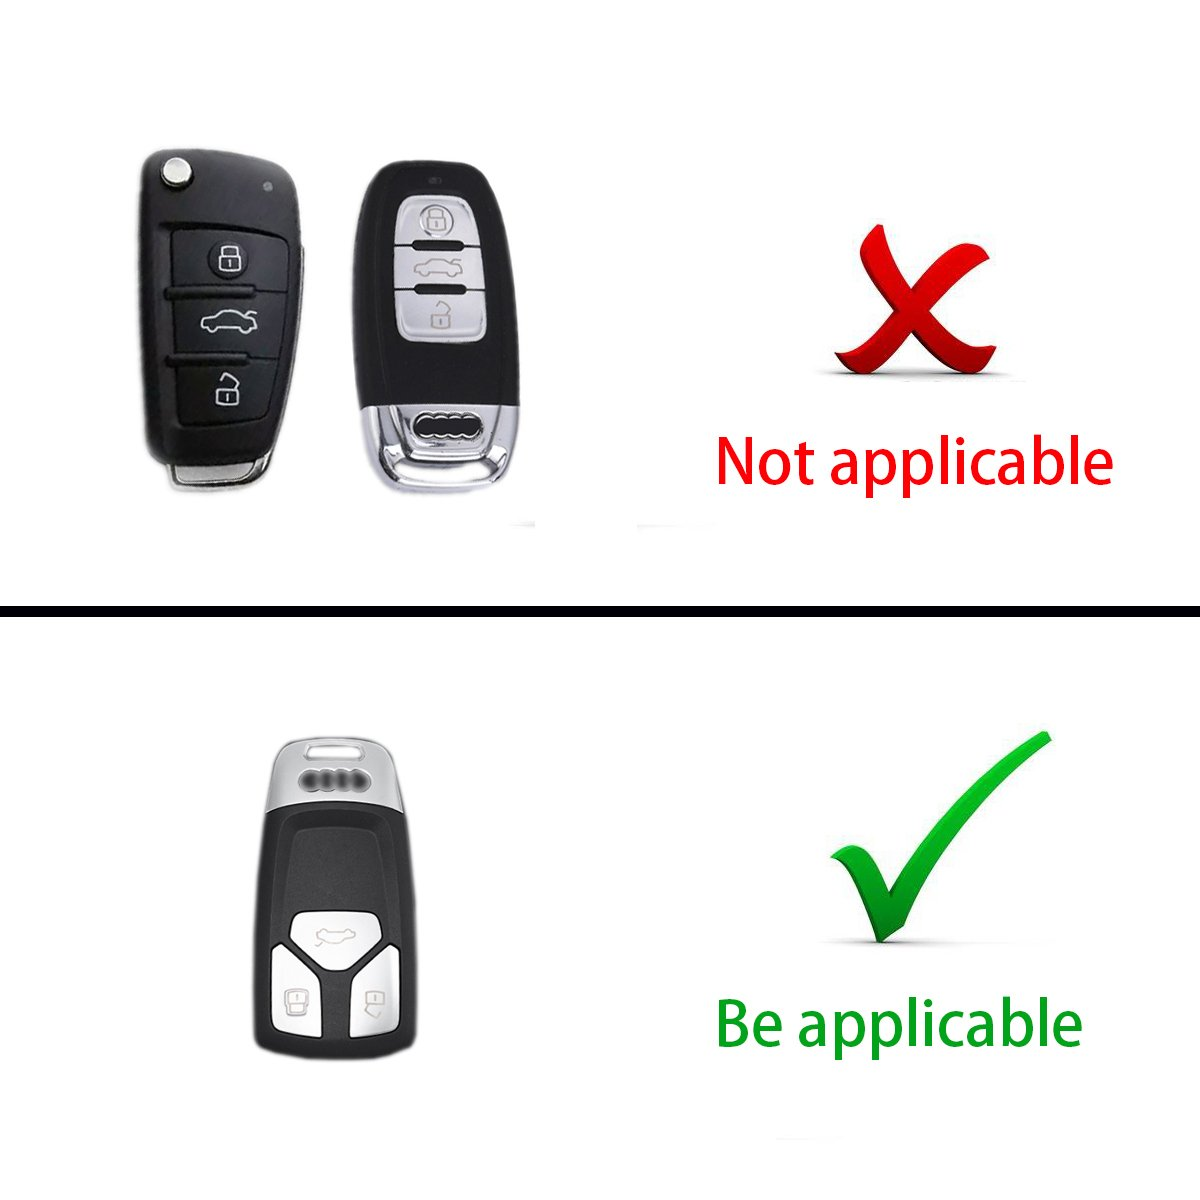 MODIPIM Keyless Entry Remote Cover Soft TPU Key Fob Case With Diamond Tassel Keychain For AUDI A4L TT A5 Q7 2016 2017 3 Buttons Smart Key Color Gold